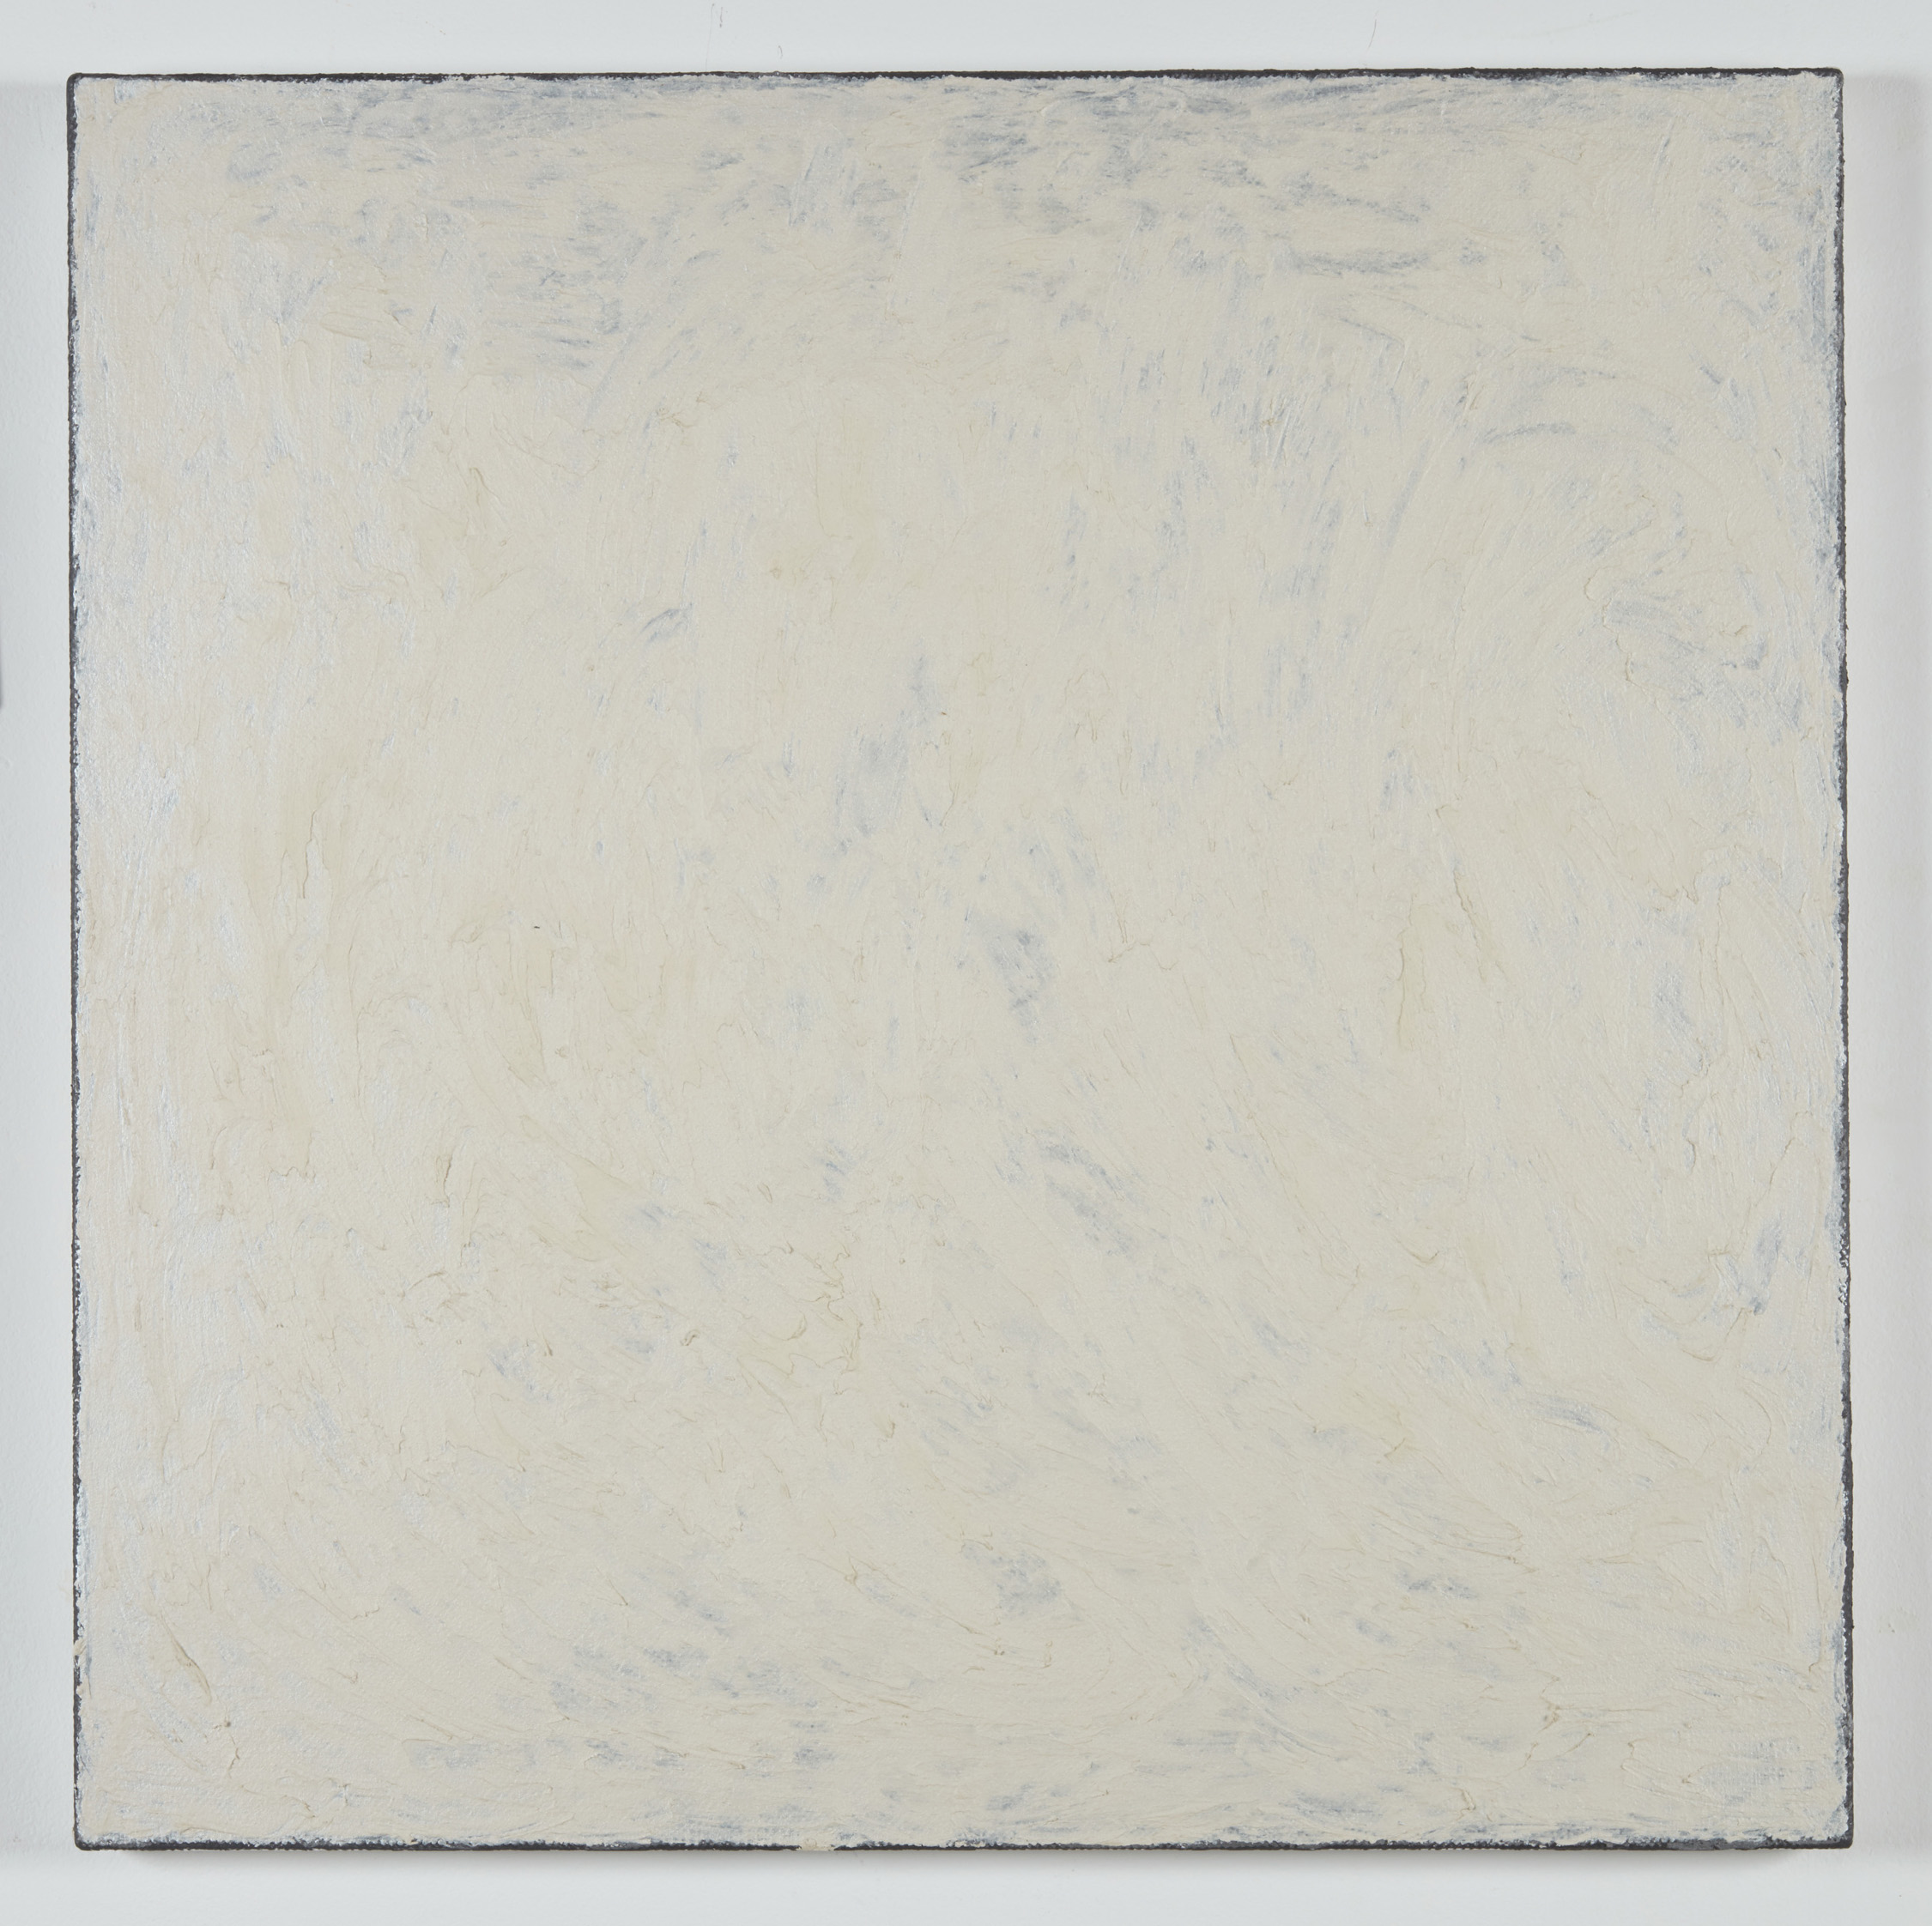 DAVID SERISIER  white mica square painting , 2019 oil, wax and enamel on linen 84 x 84 cm